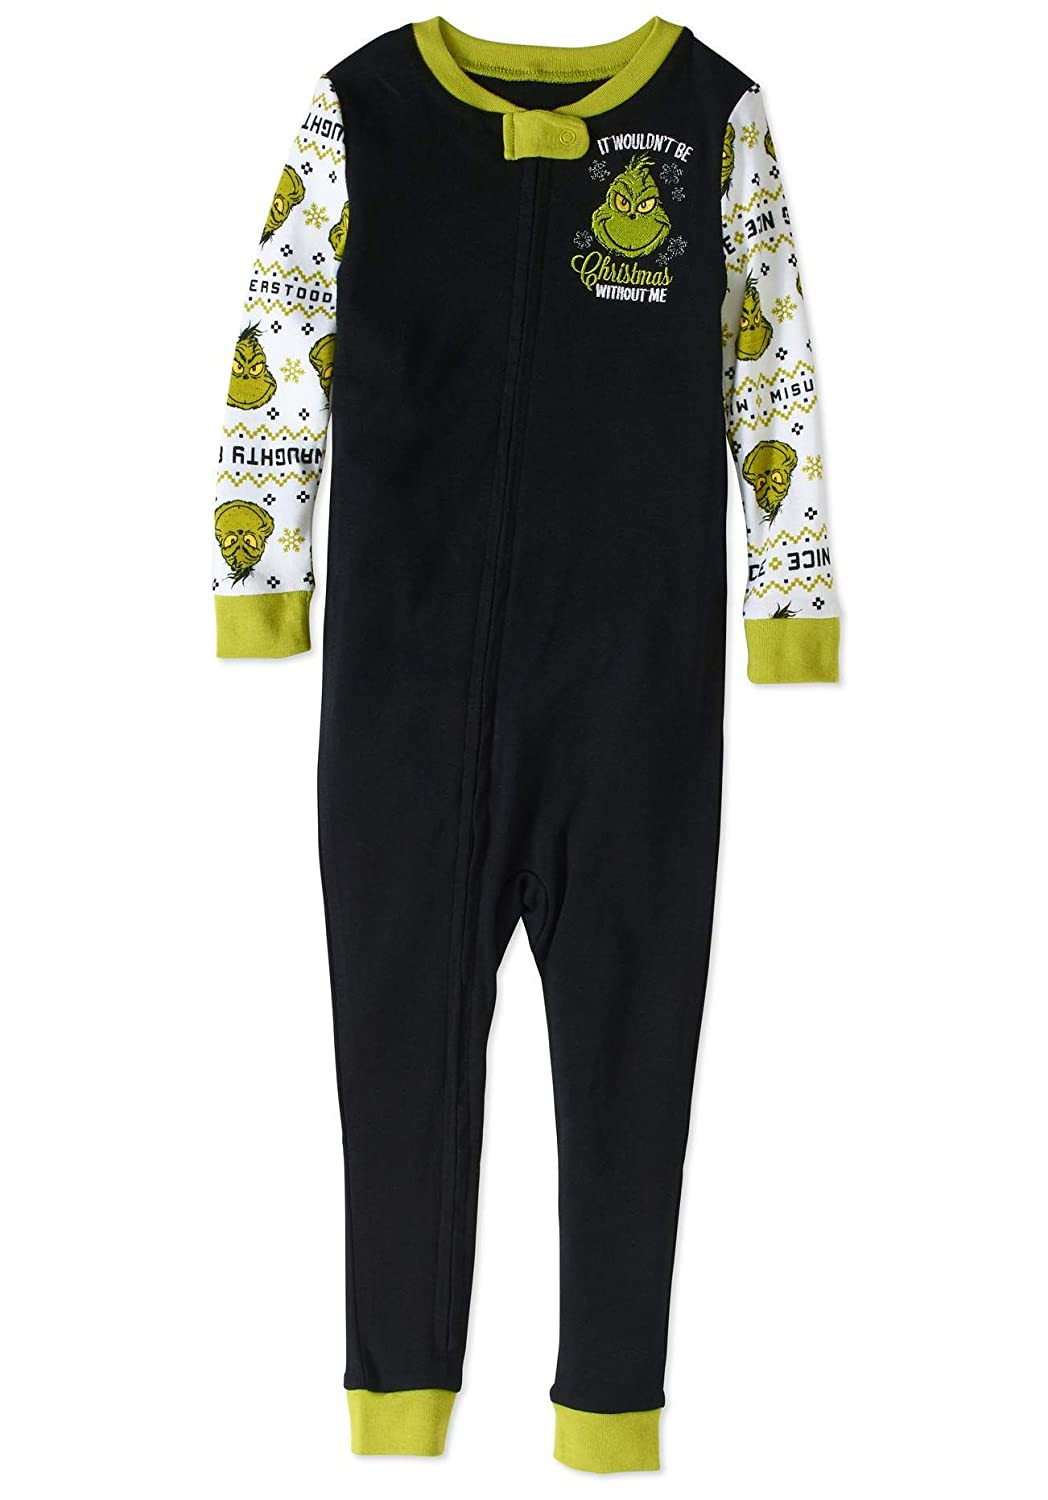 The Grinch Christmas Holiday Pajamas Baby Toddler Unisex Footless Sleeper RB3579223U